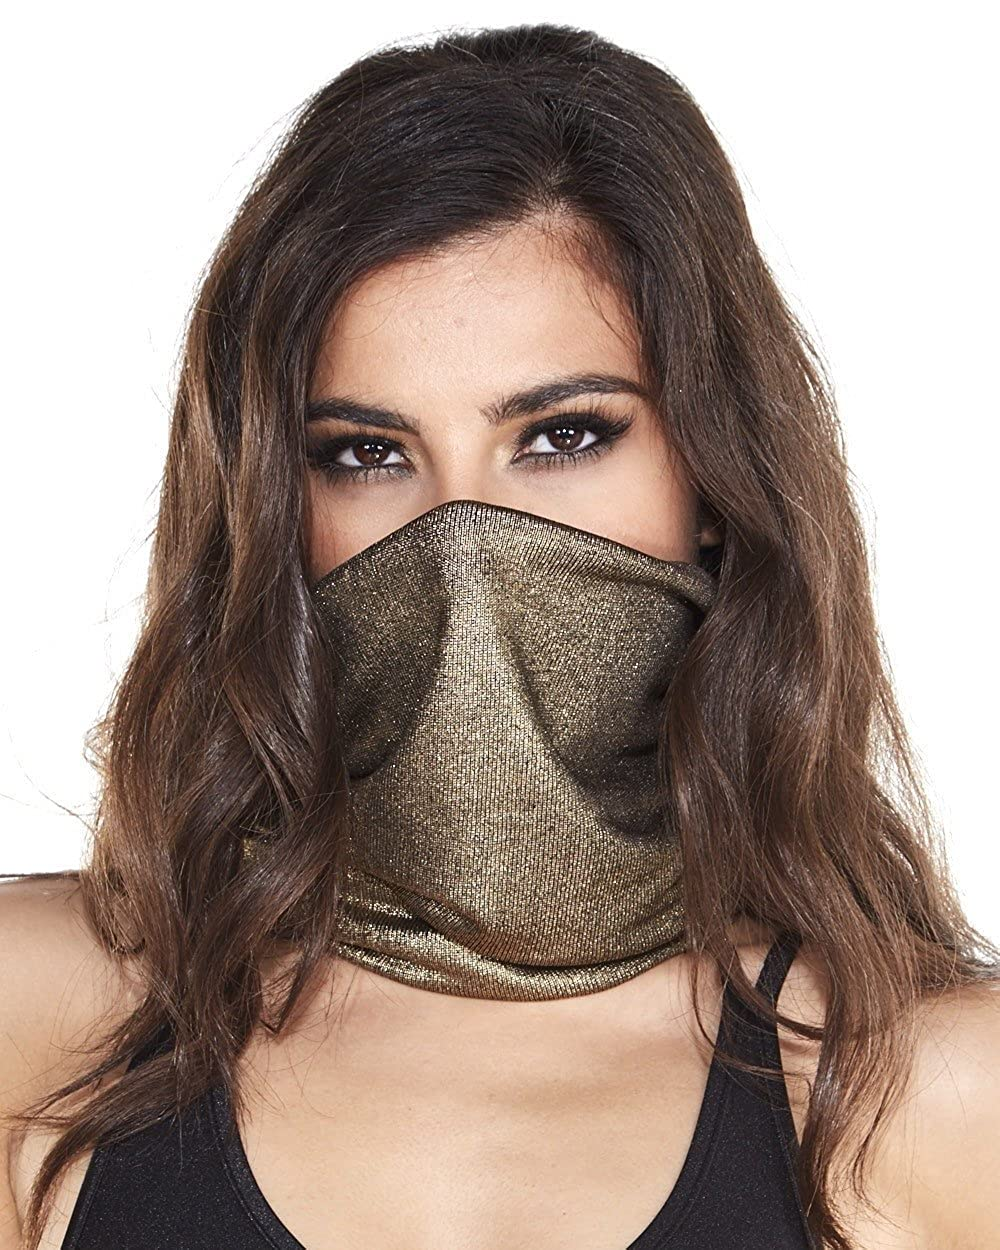 iHeartRaves Seamless Rave Mask All Over Print Bandana - Choose from many designs mask_ktx_rb-kty